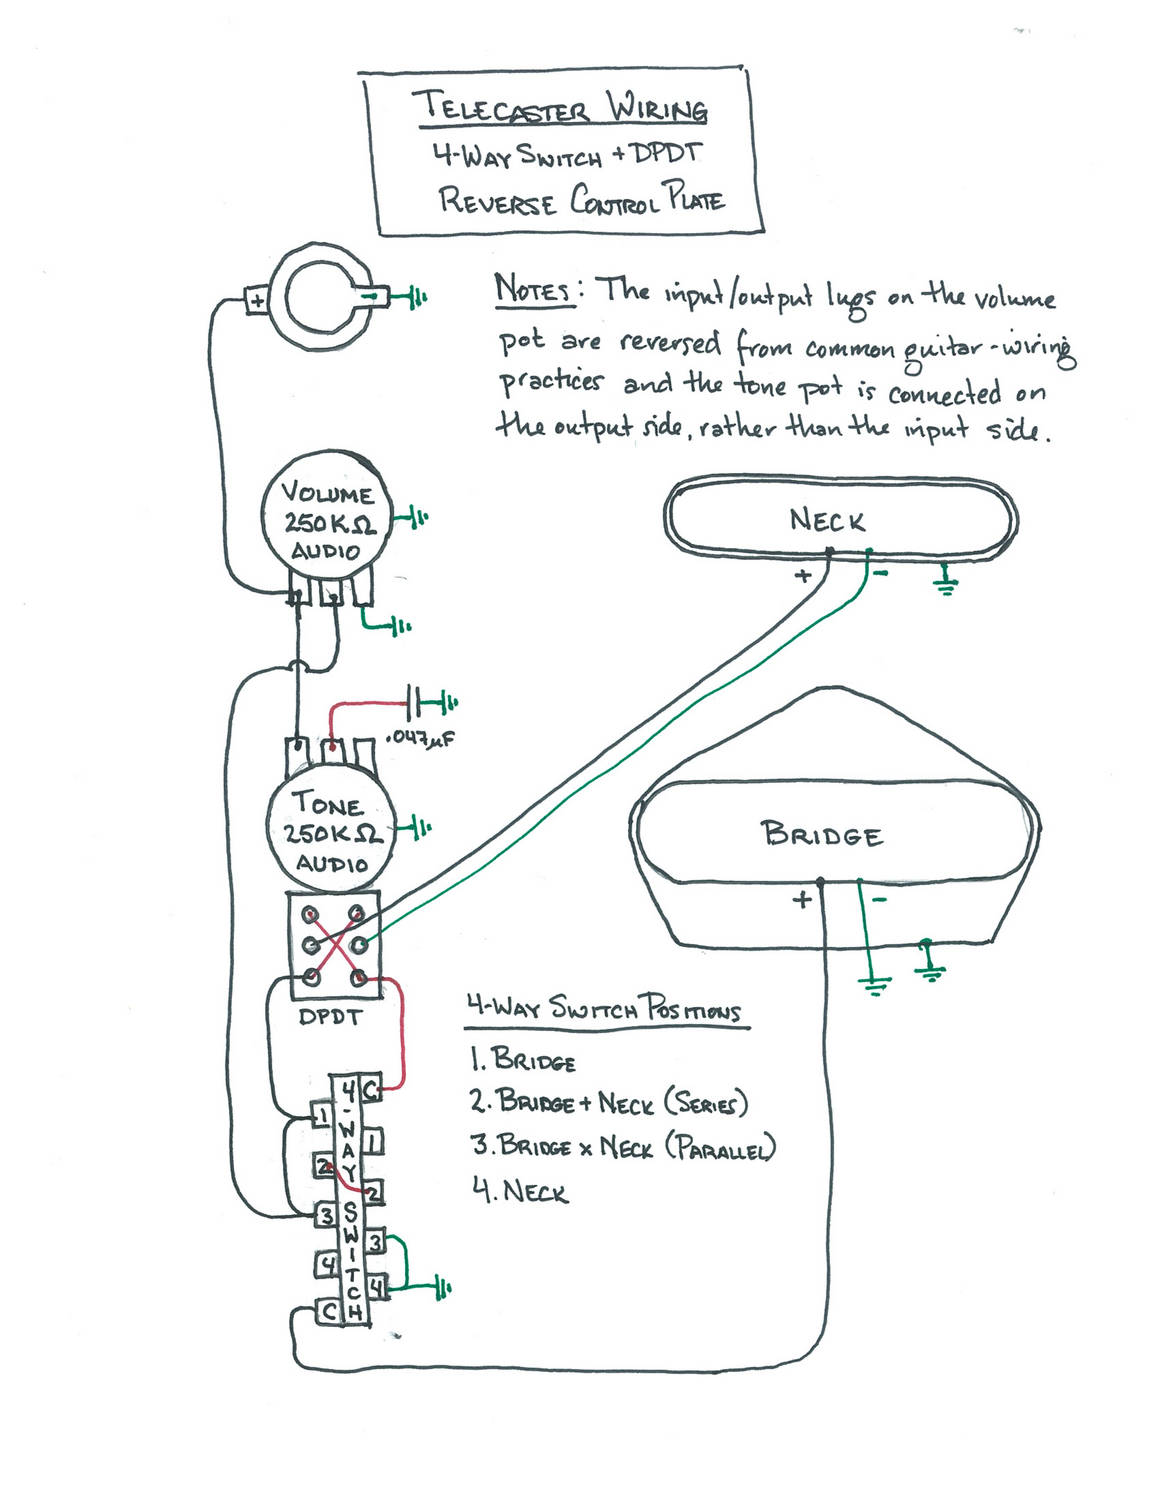 Switch Wiring Diagram On Way Tele 4 With Dpdt Reverse Control Plate